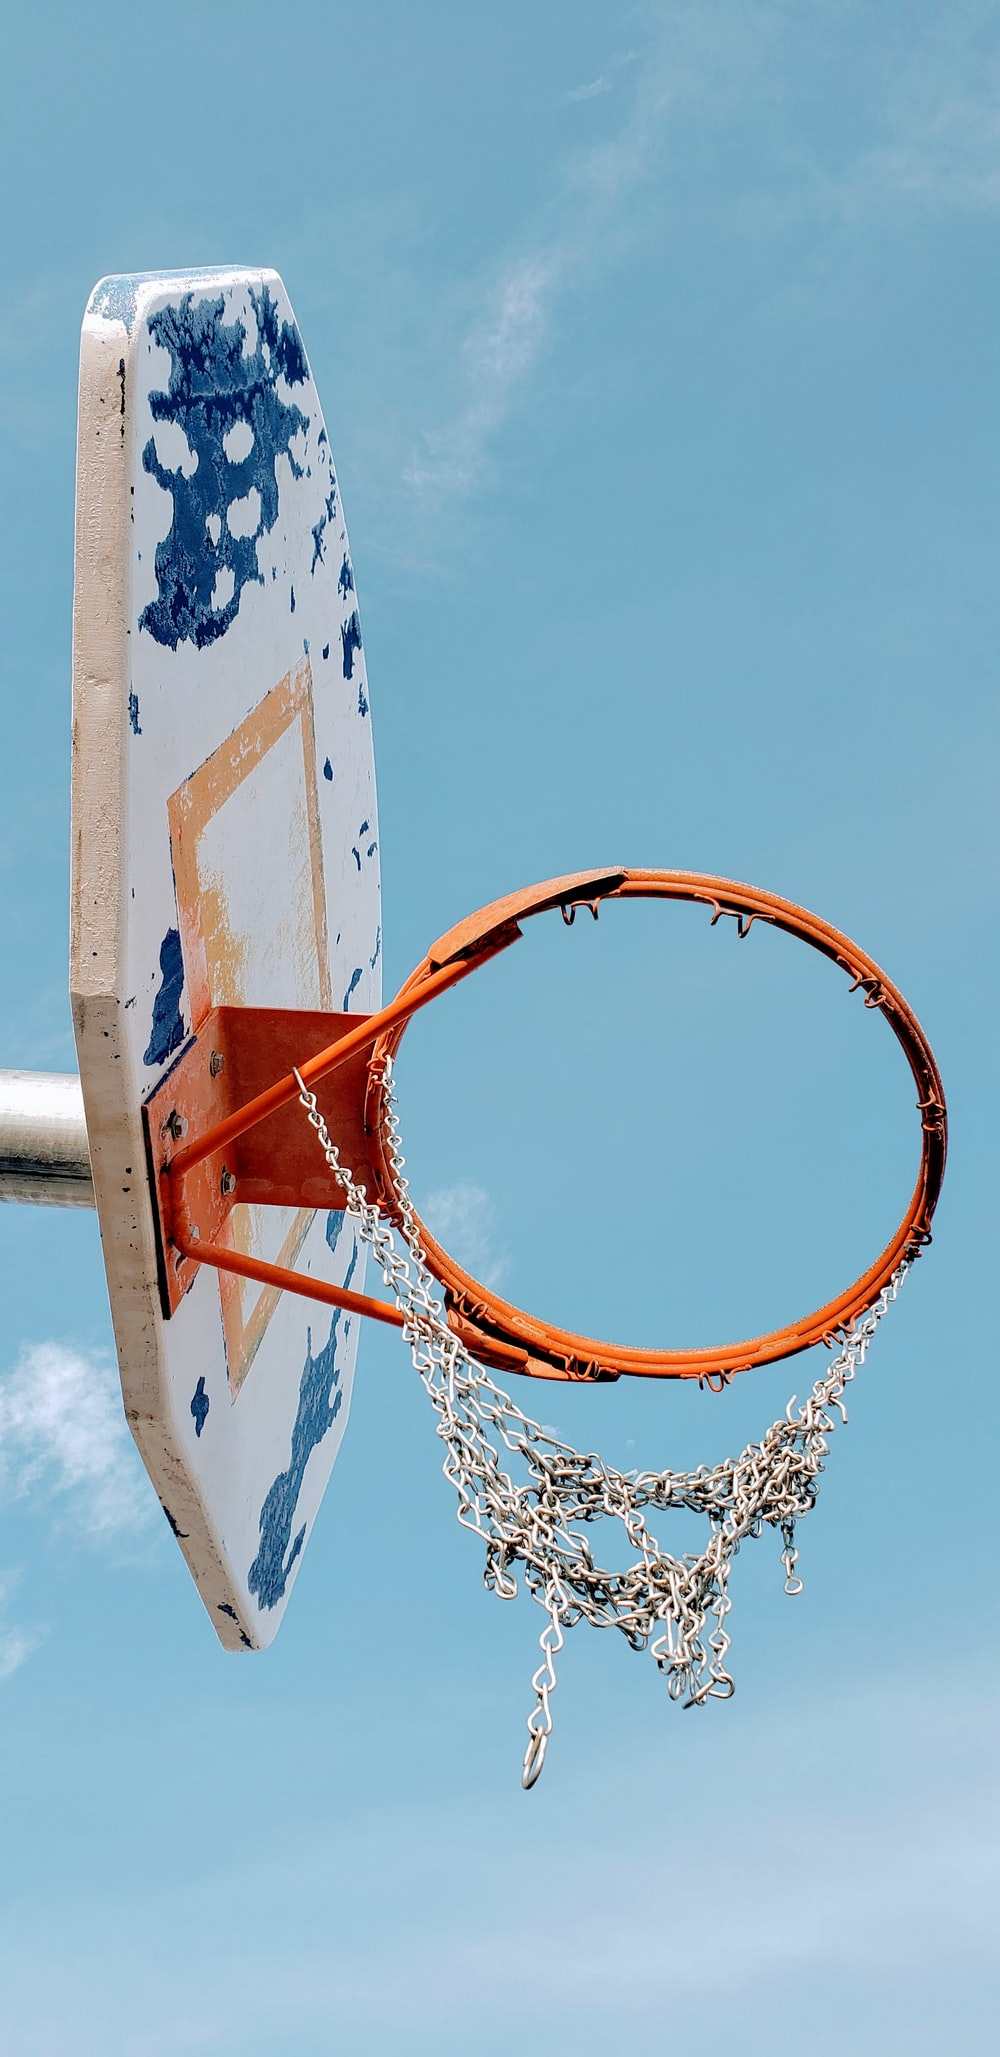 white and blue portable hoop under blue sky